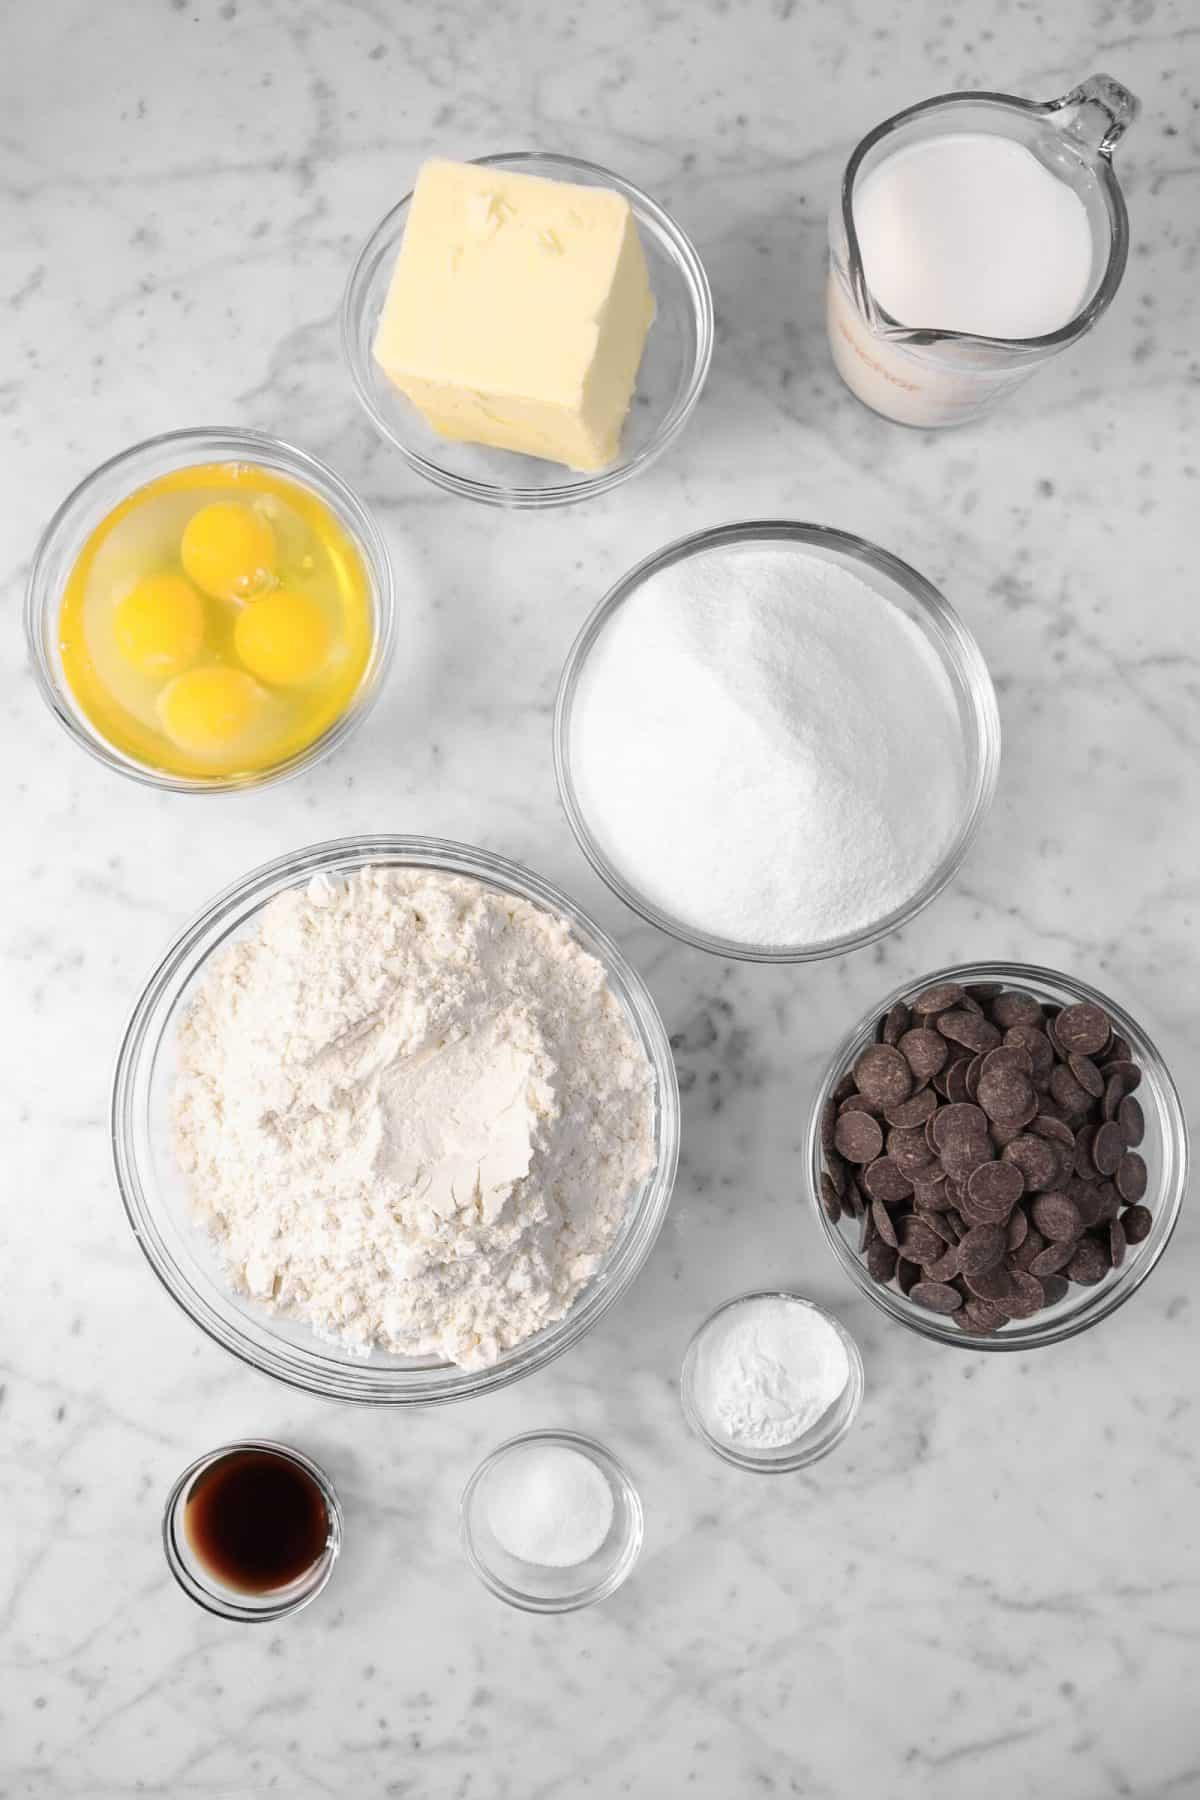 ingredients for chocolate marble pound cake on a marble counter